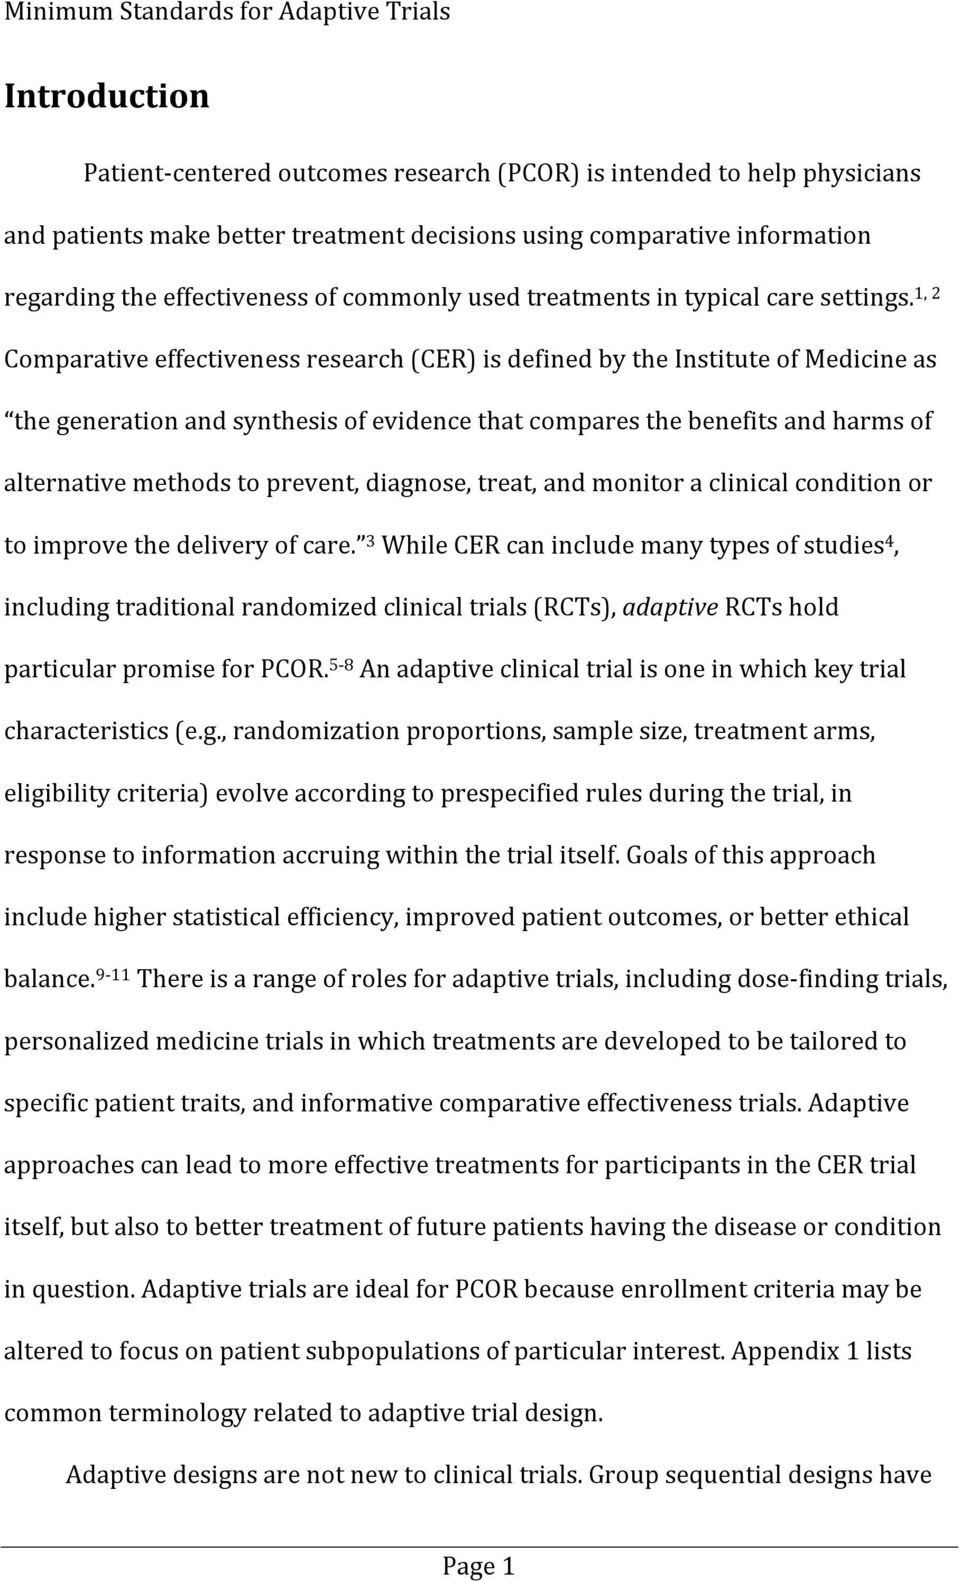 1, 2 Comparative effectiveness research (CER) is defined by the Institute of Medicine as the generation and synthesis of evidence that compares the benefits and harms of alternative methods to